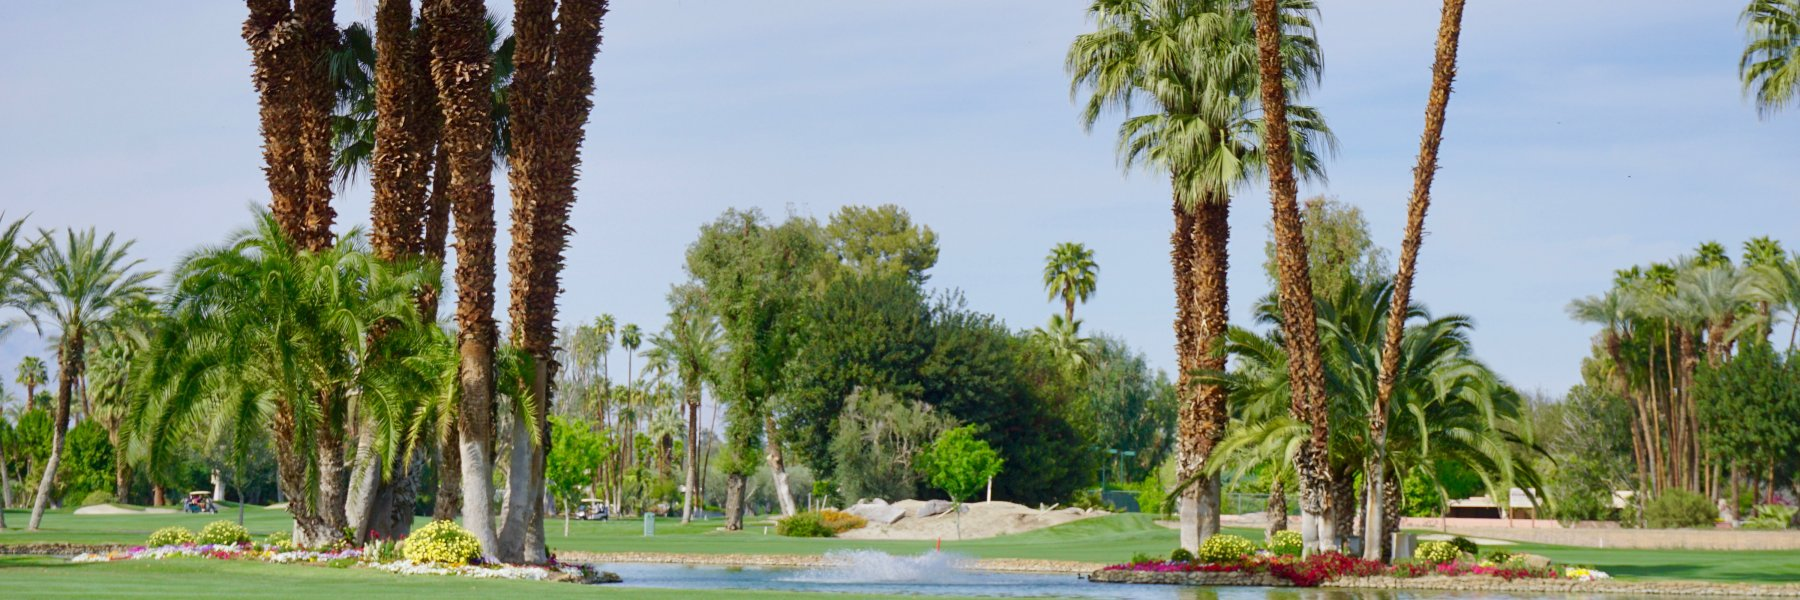 Tamarisk Country Club is a community of homes in Rancho Mirage California